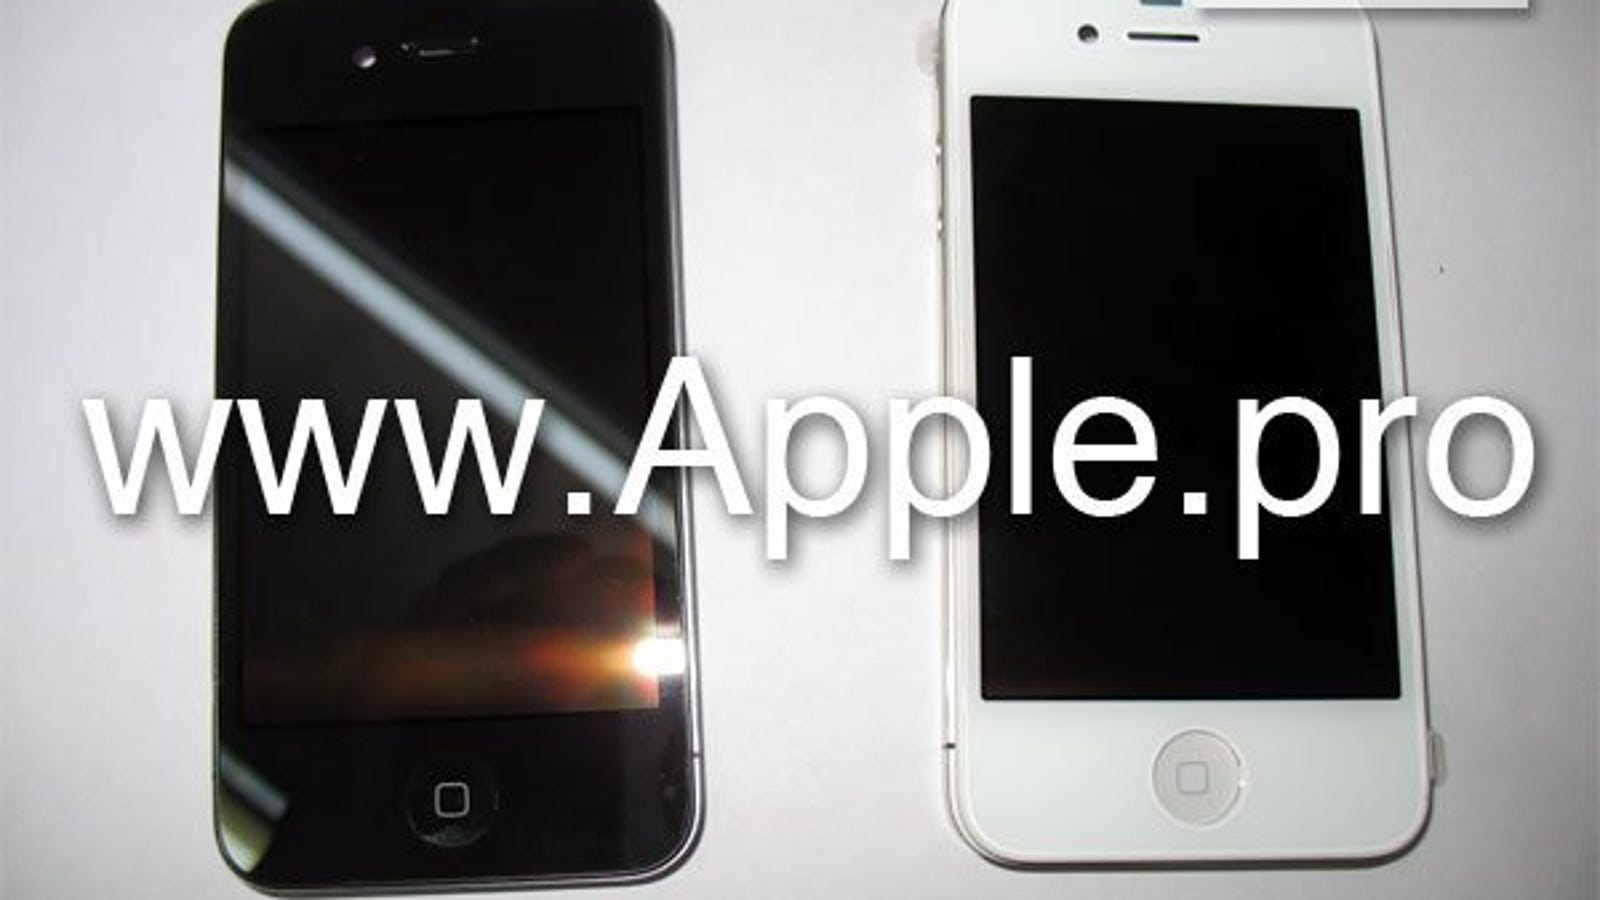 Another Purported White iPhone 4G Case Spotted in Hong Kong